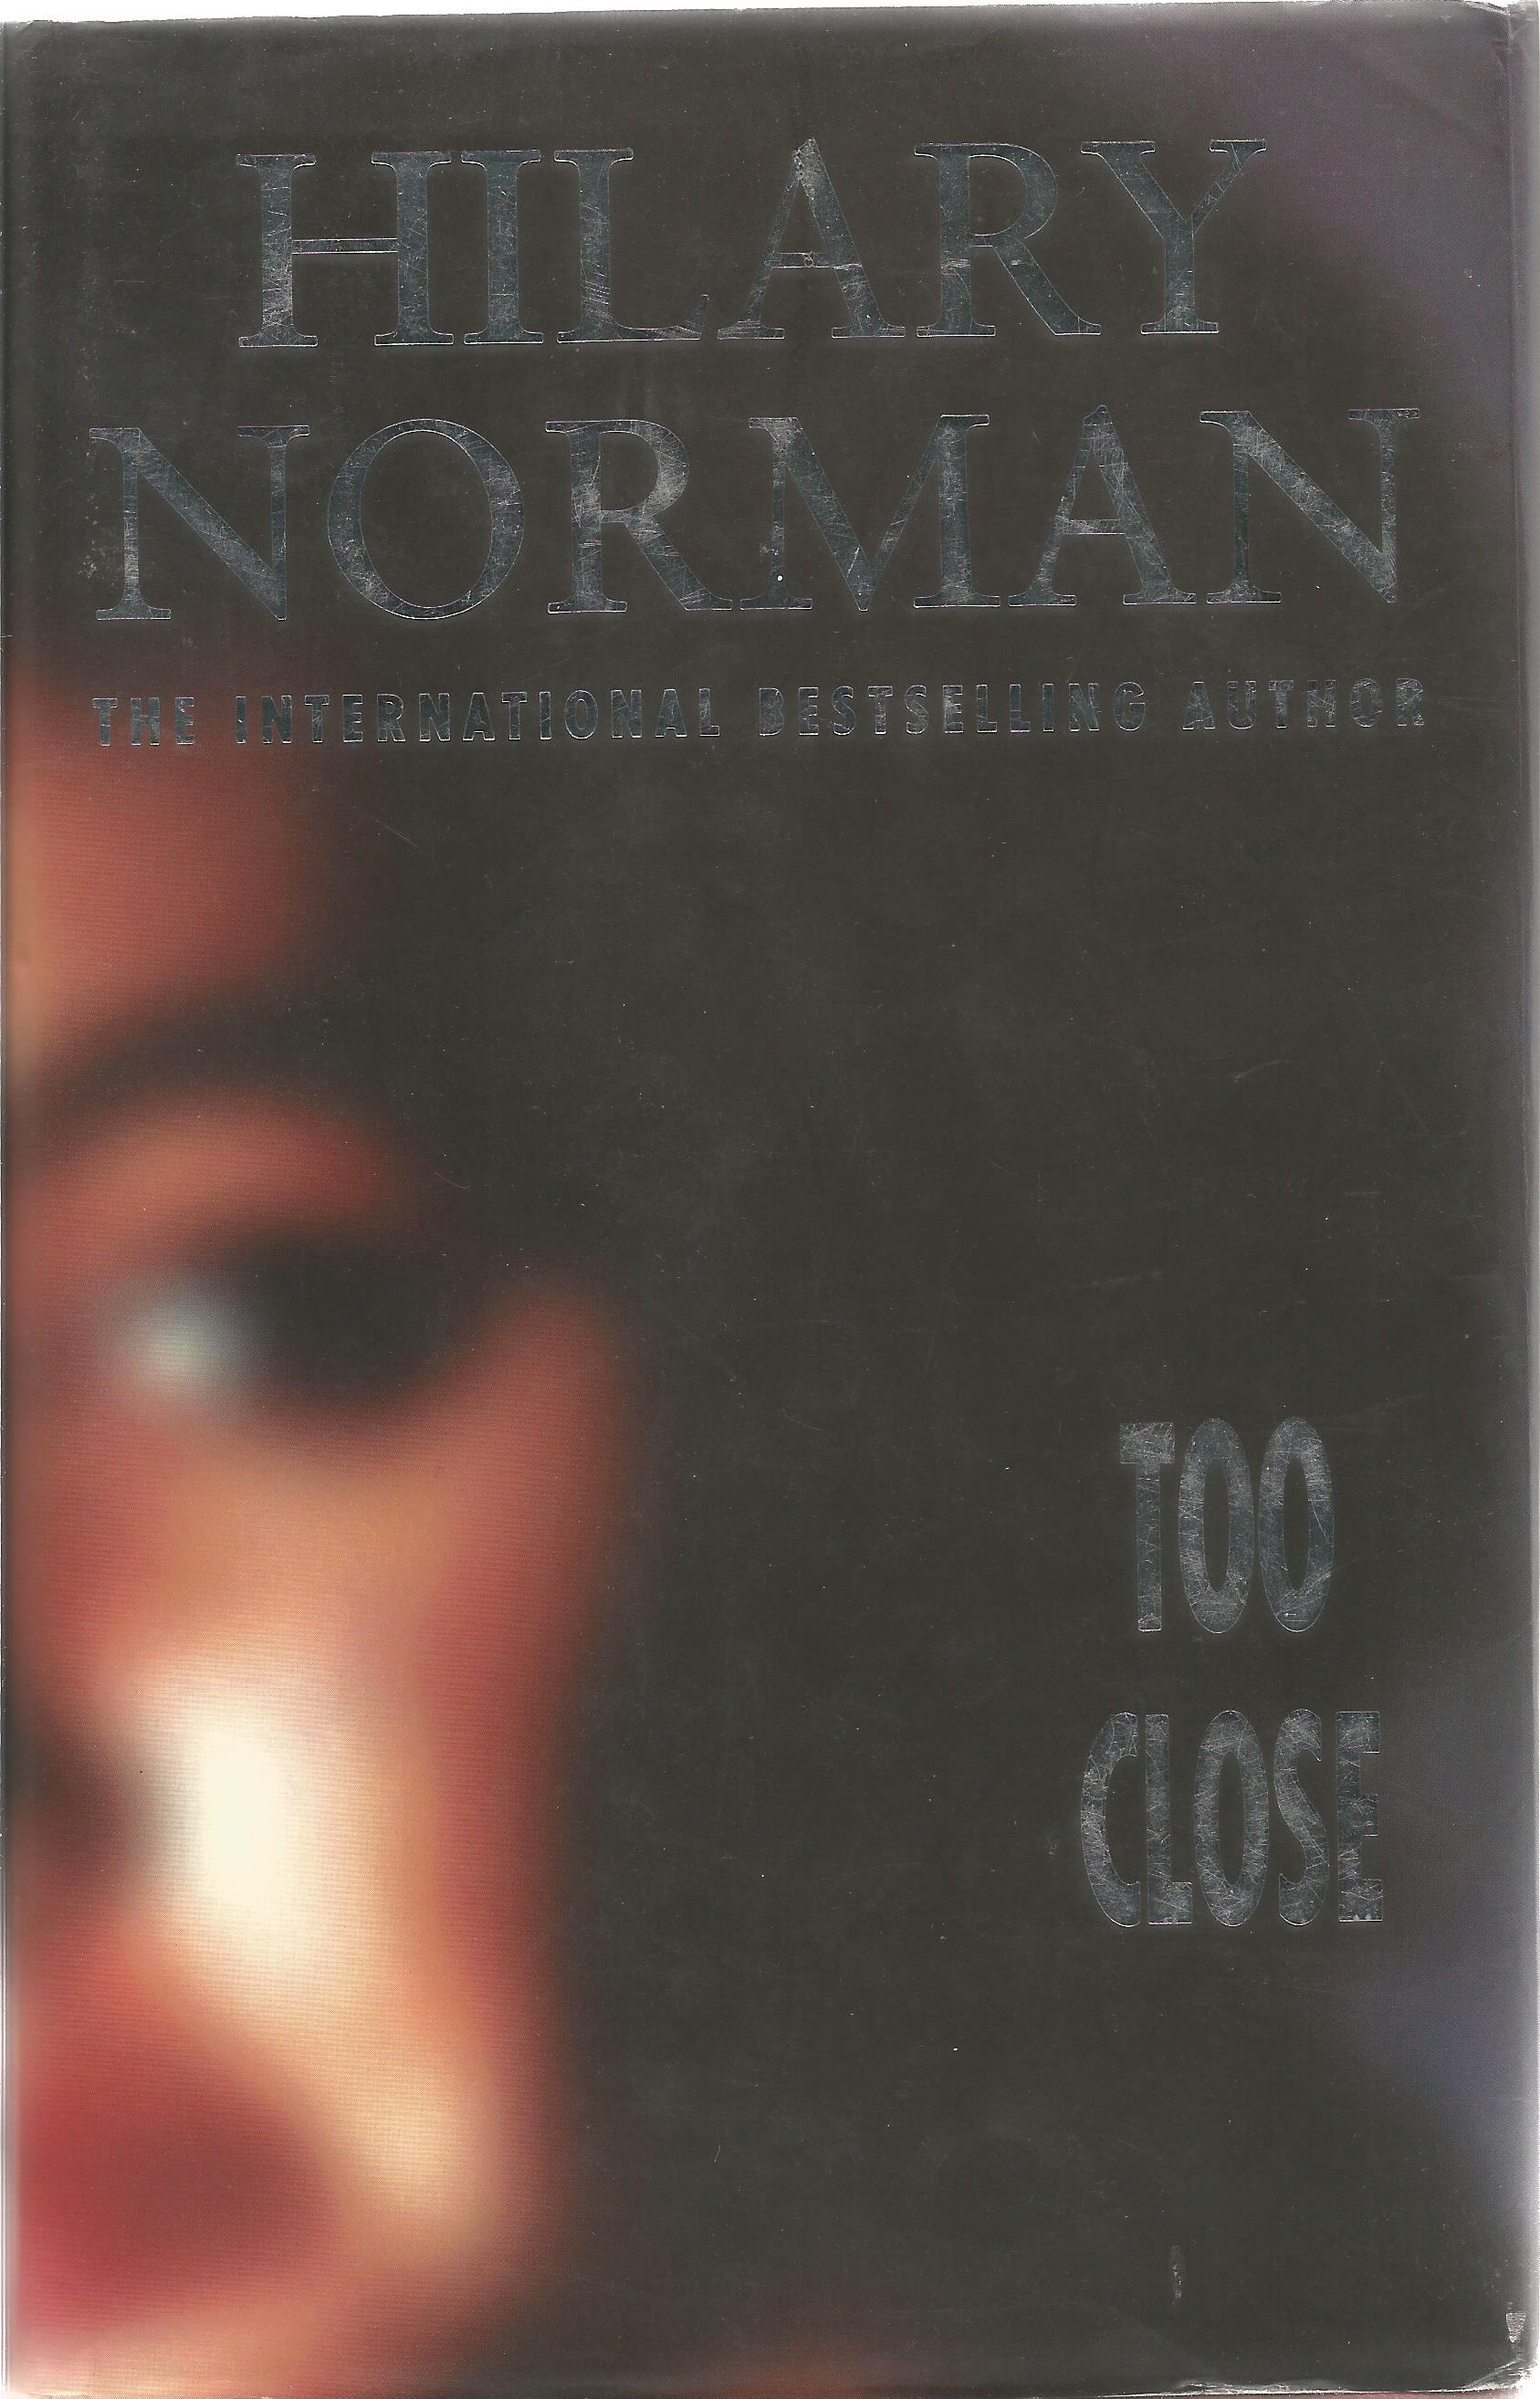 Hilary Norman Hardback Book Too Close signed by the Author on the Title Page First Edition dust